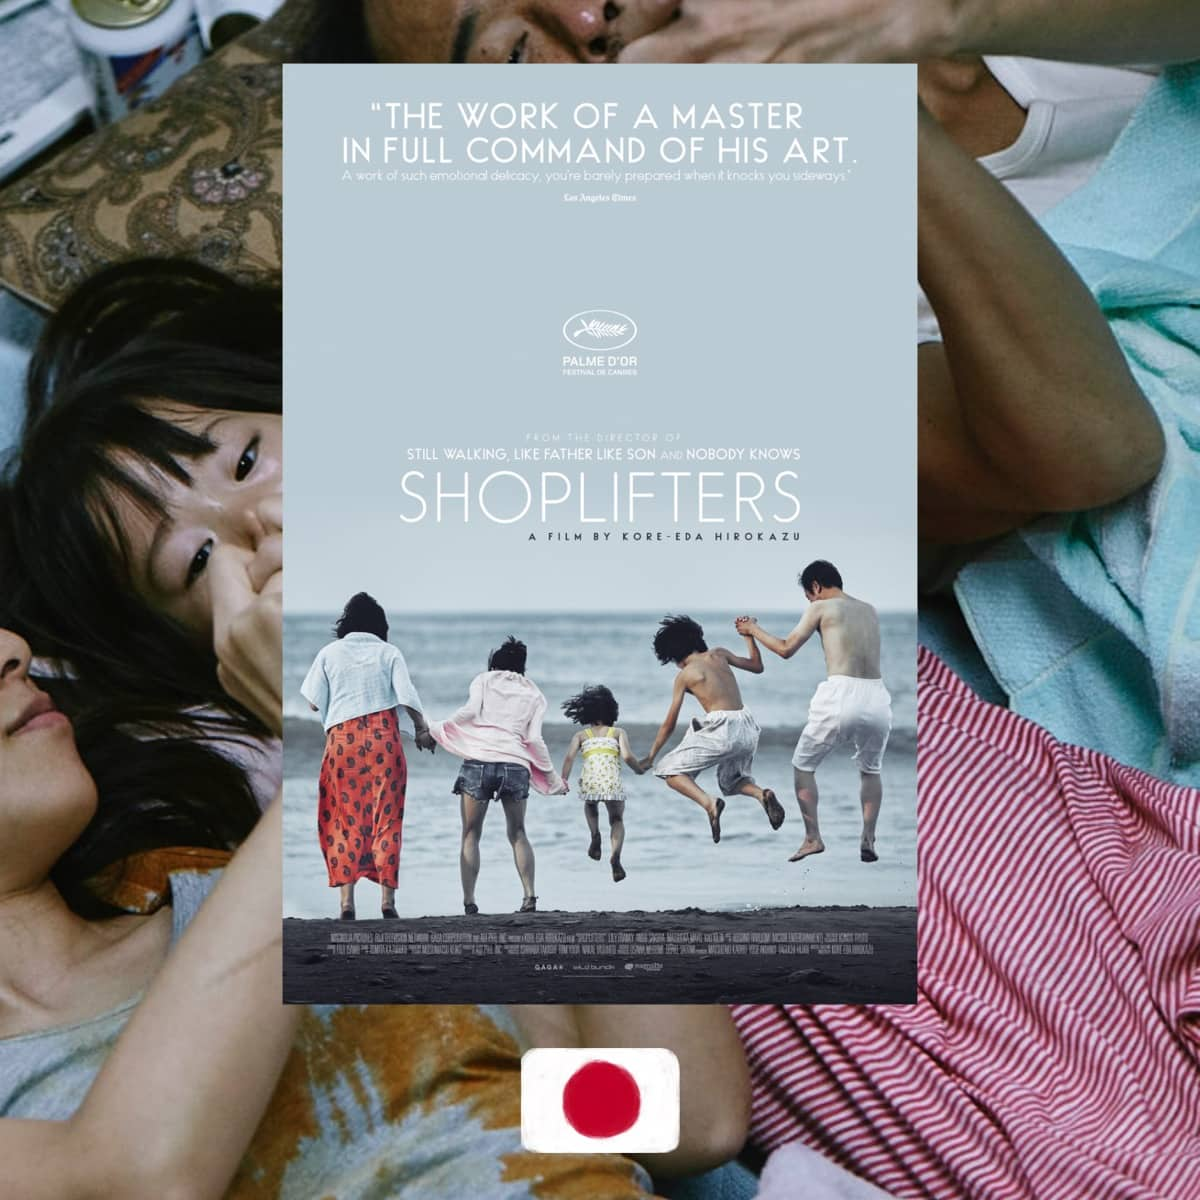 Shoplifters, Hirokazu Kore-eda, movie poster